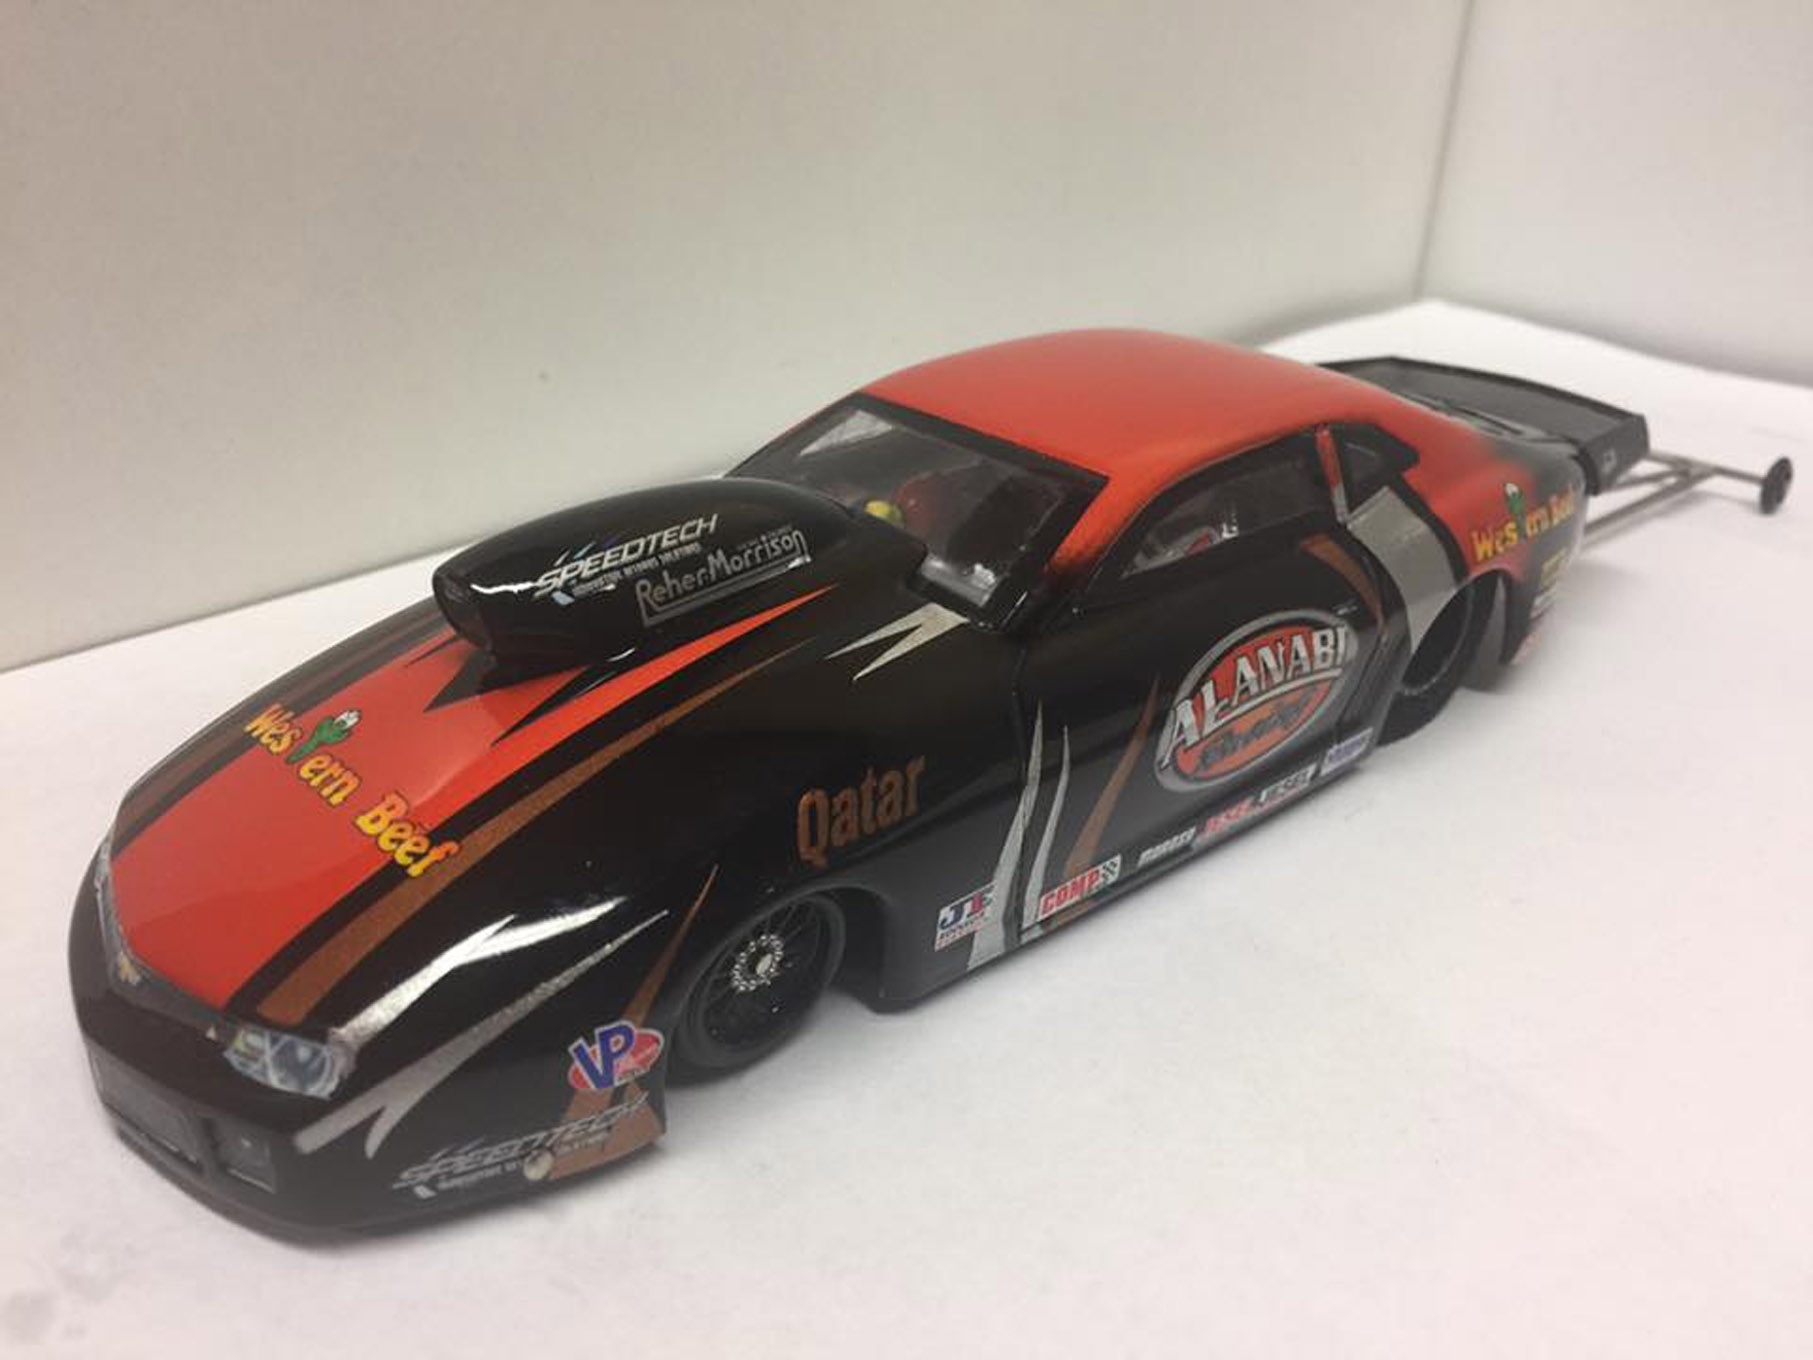 Racing Slot Rc Drag Car